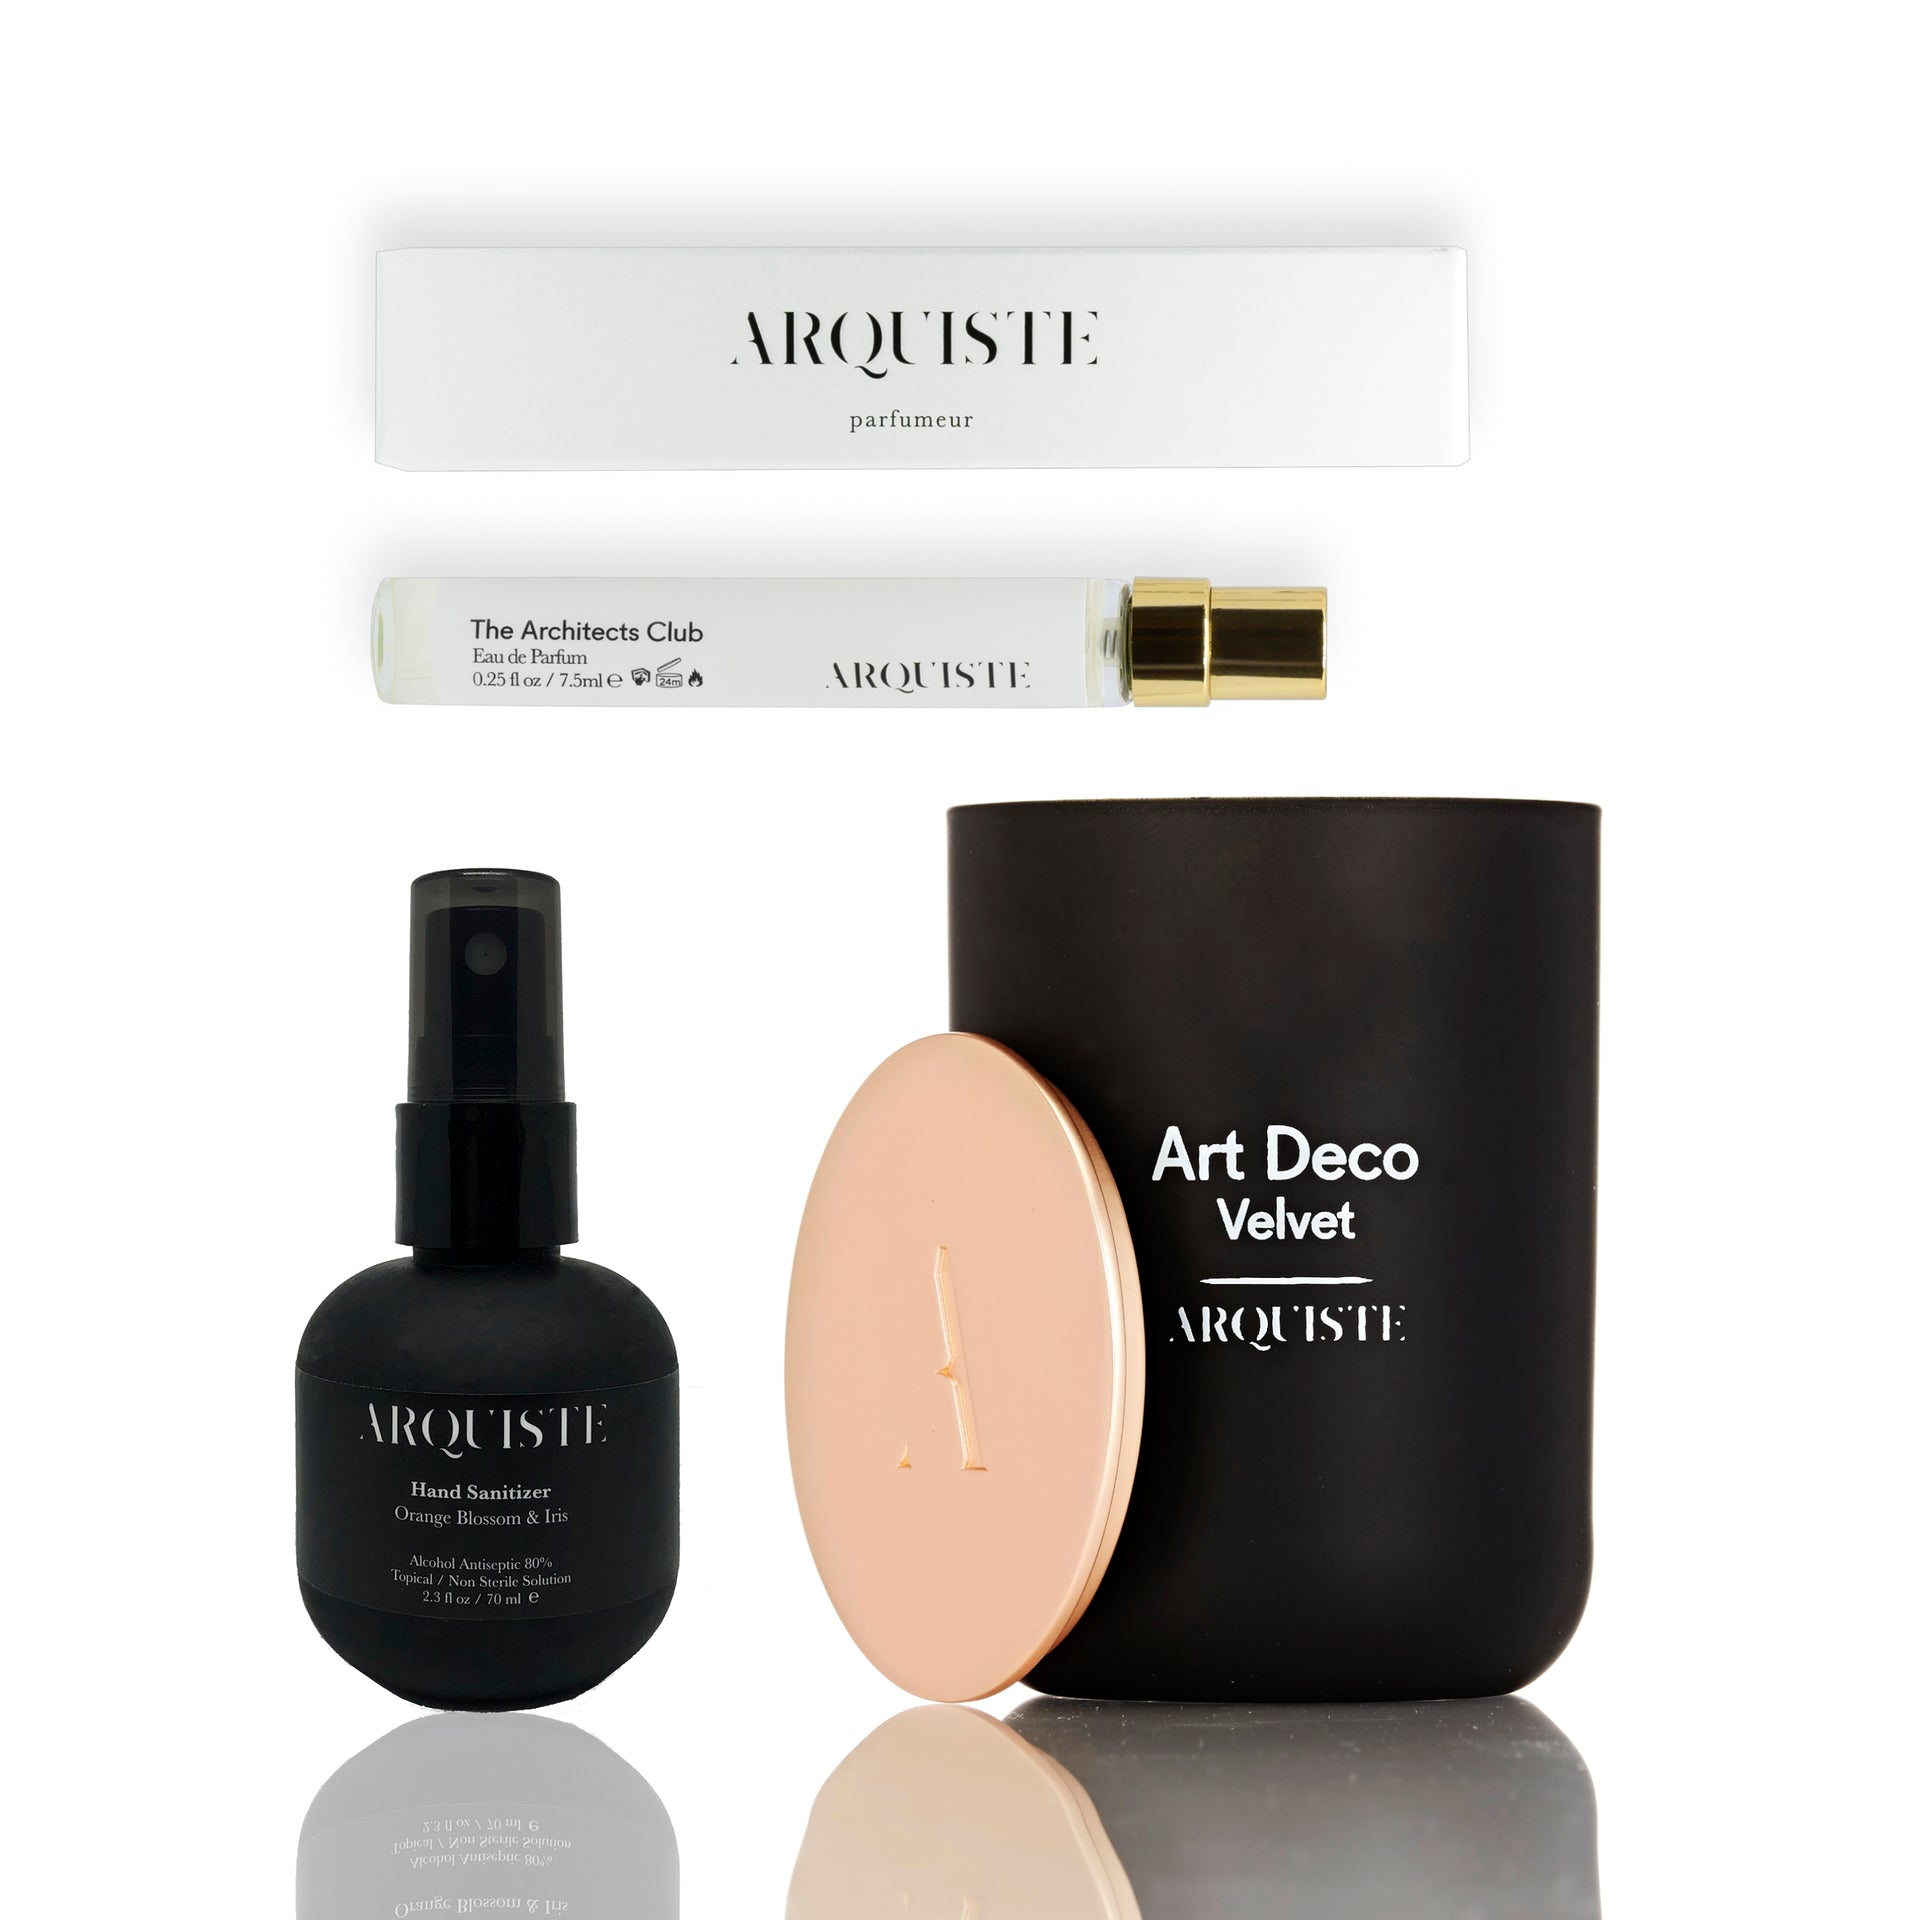 The Architects Club Gift Set